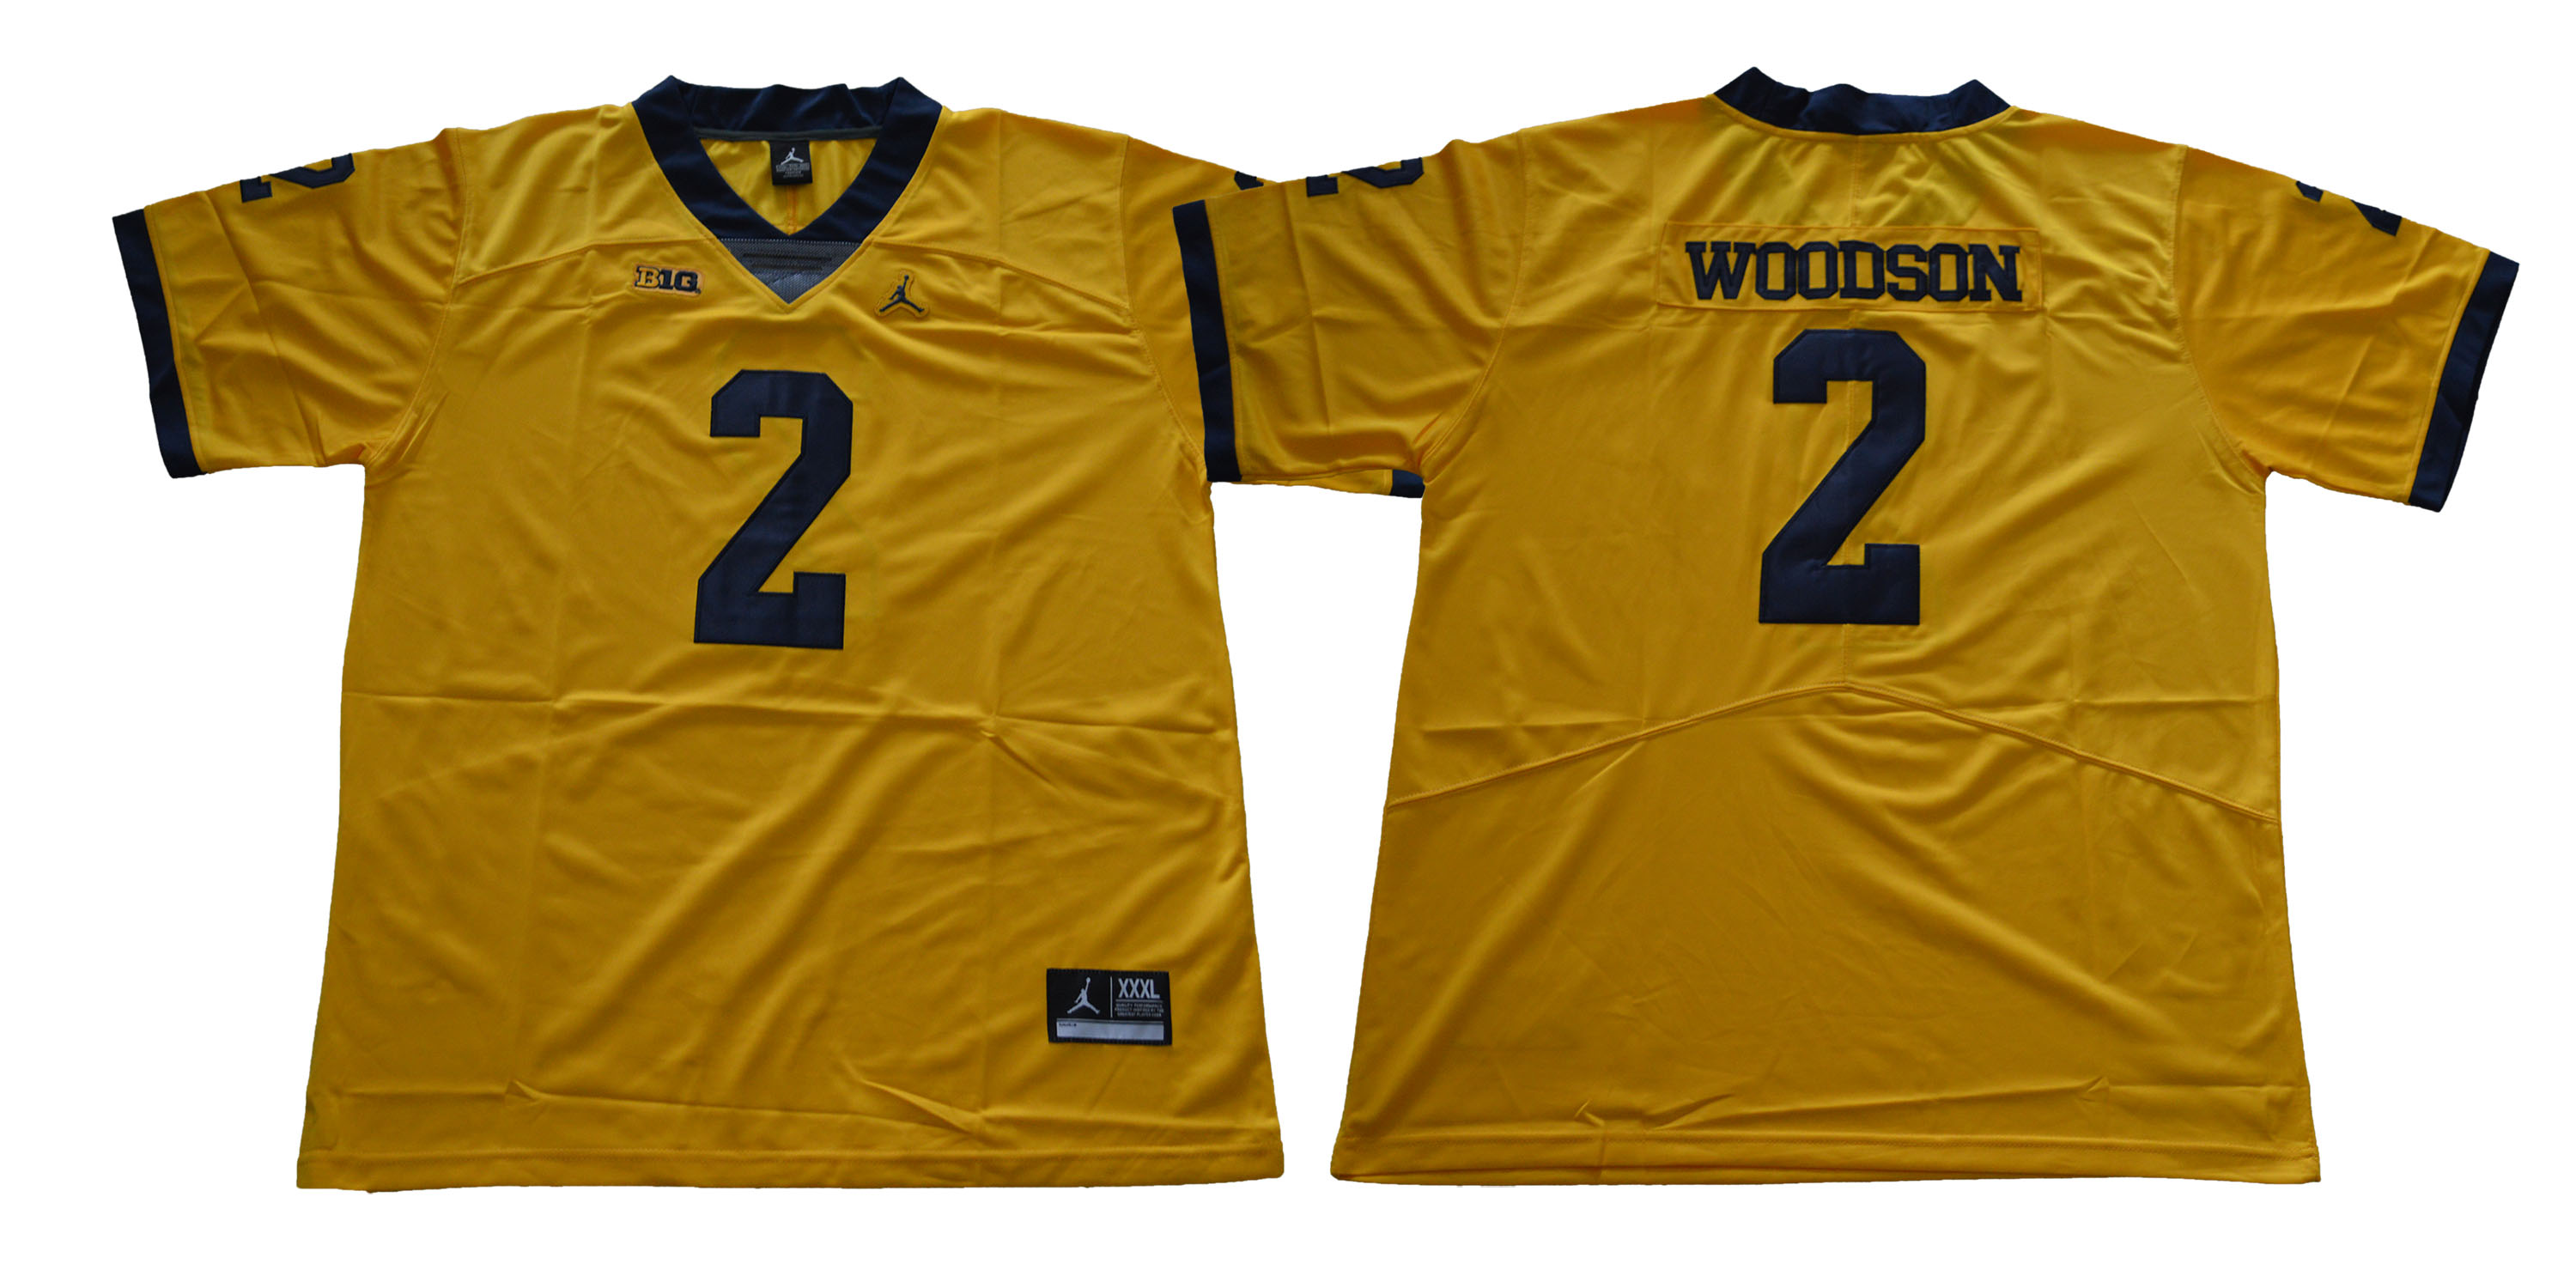 Michigan Wolverines 2 Charles Woodson Gold College Football Jersey